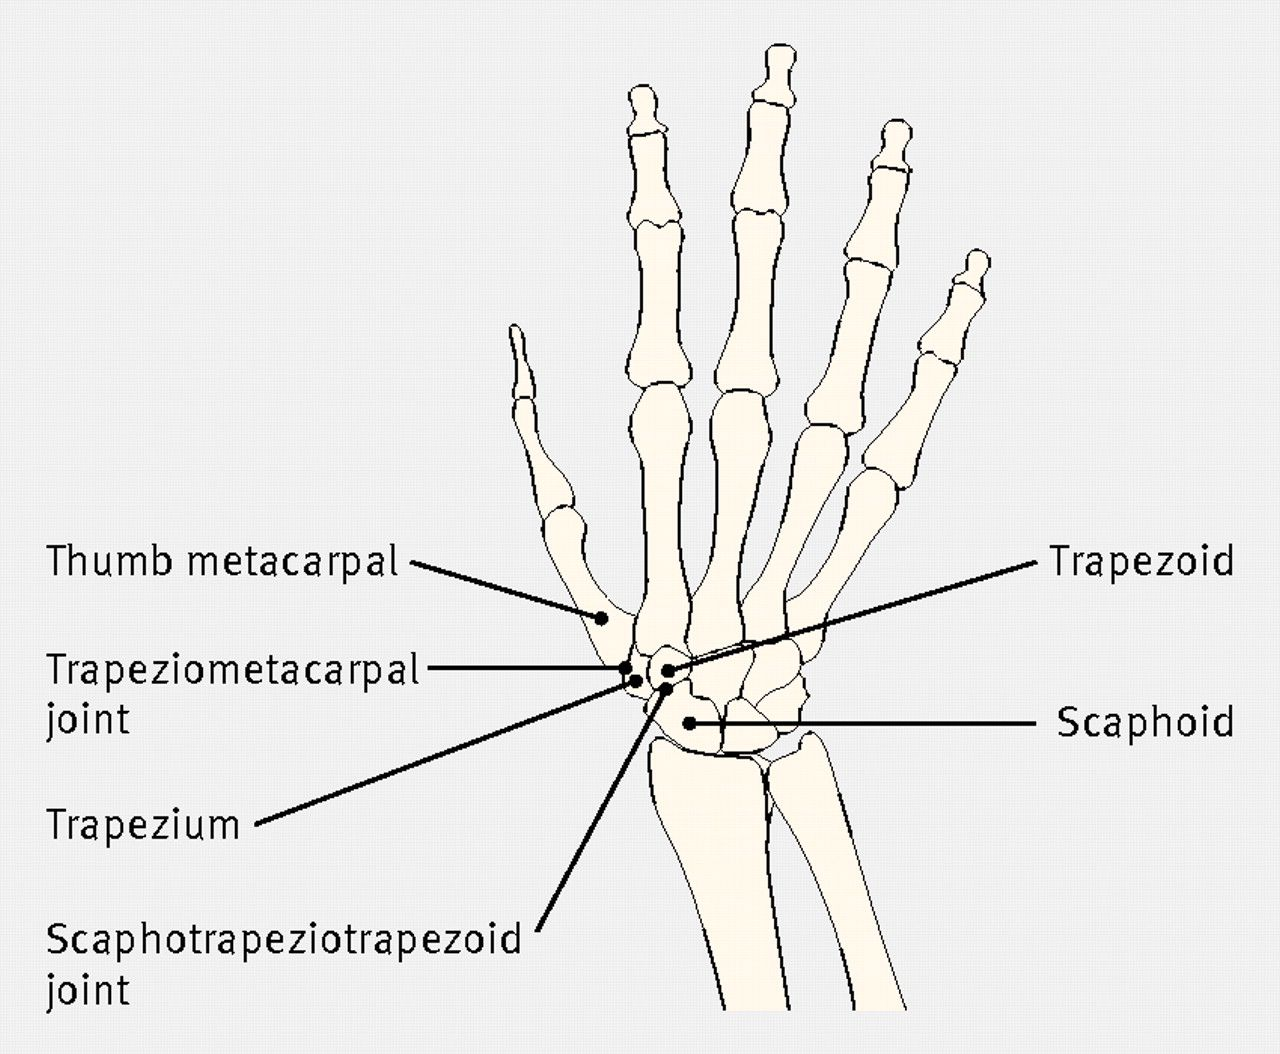 Peachy Diagram Of The Bones Of The Hand And Carpus Showing The Wiring Cloud Cosmuggs Outletorg